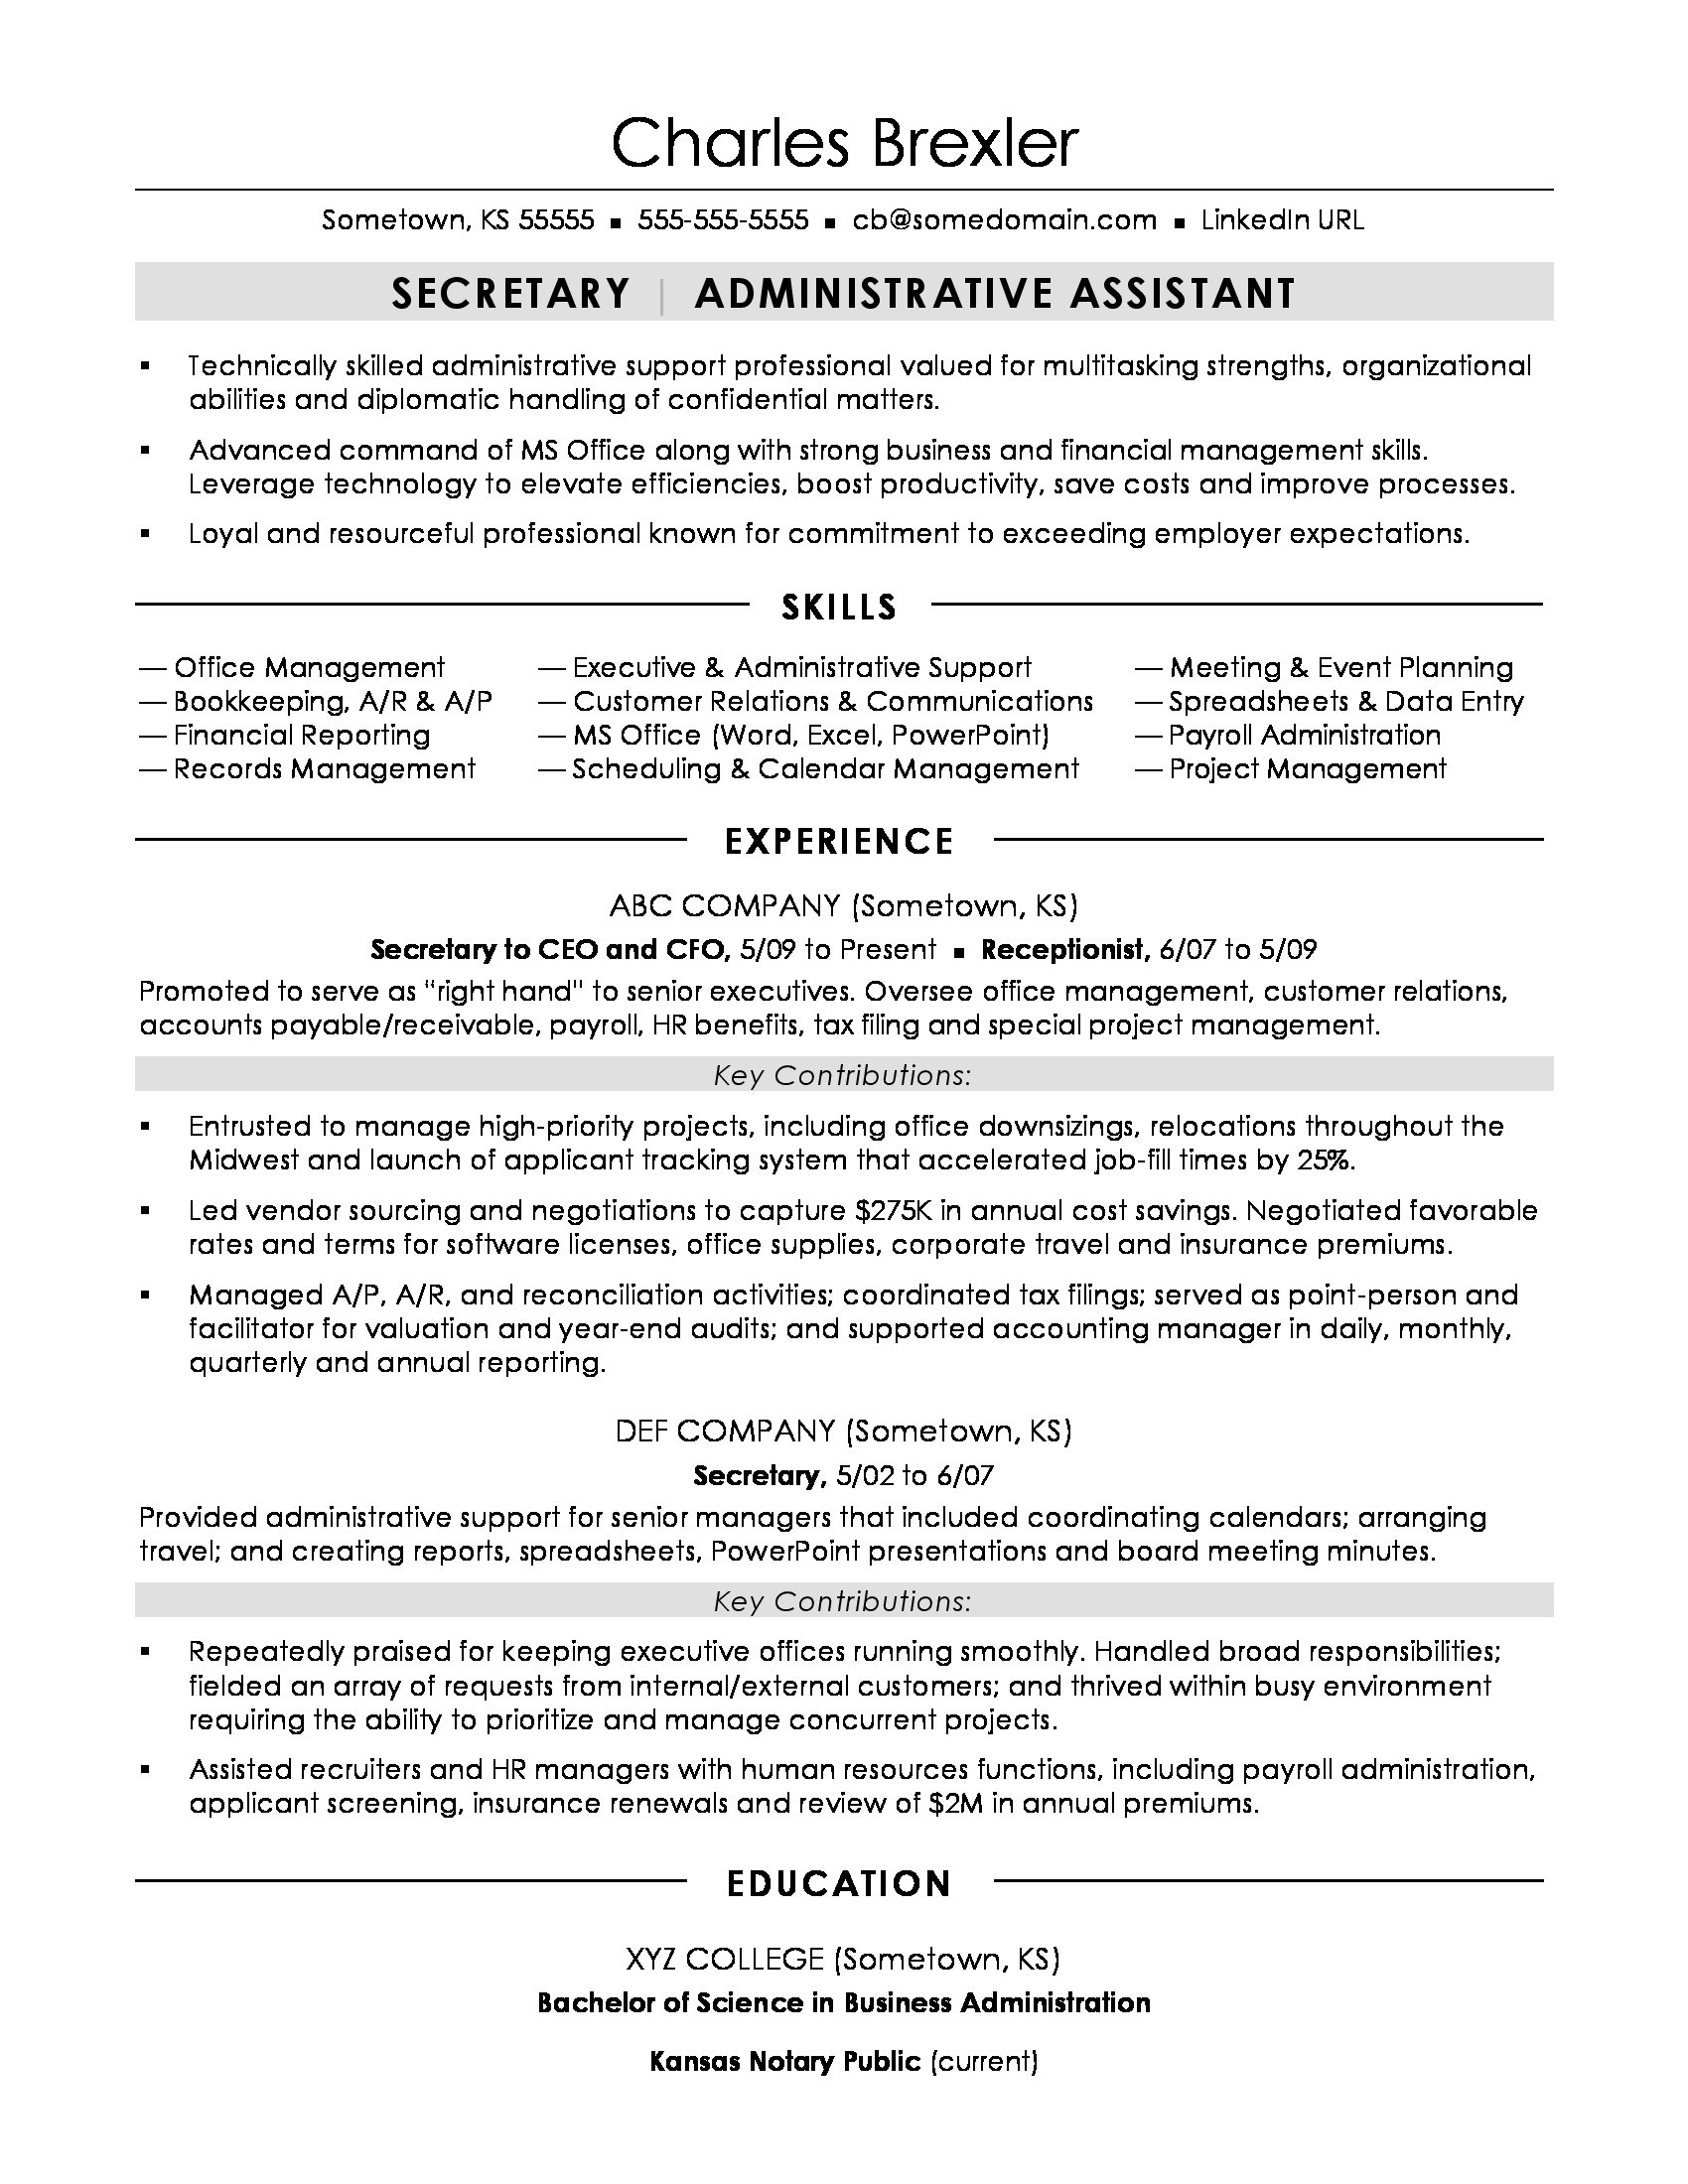 copy resume templates from my perfect reusme